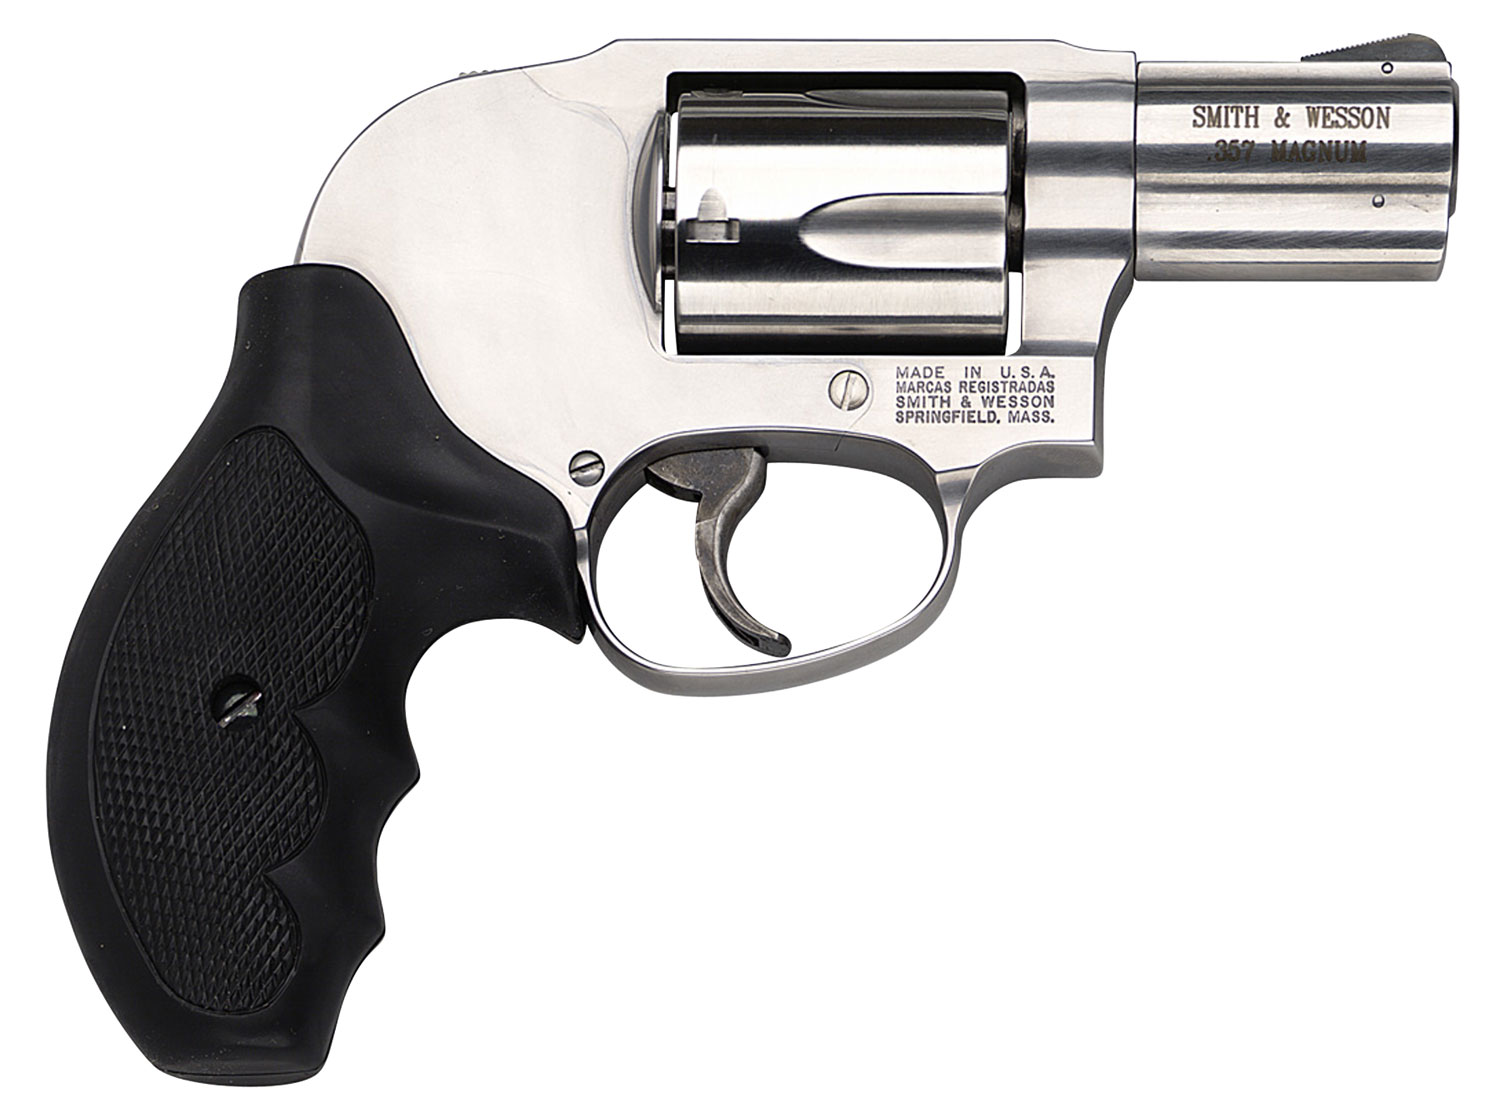 Smith & Wesson 163210 649 Shrouded Hammer Single/Double 357 Magnum 2.125